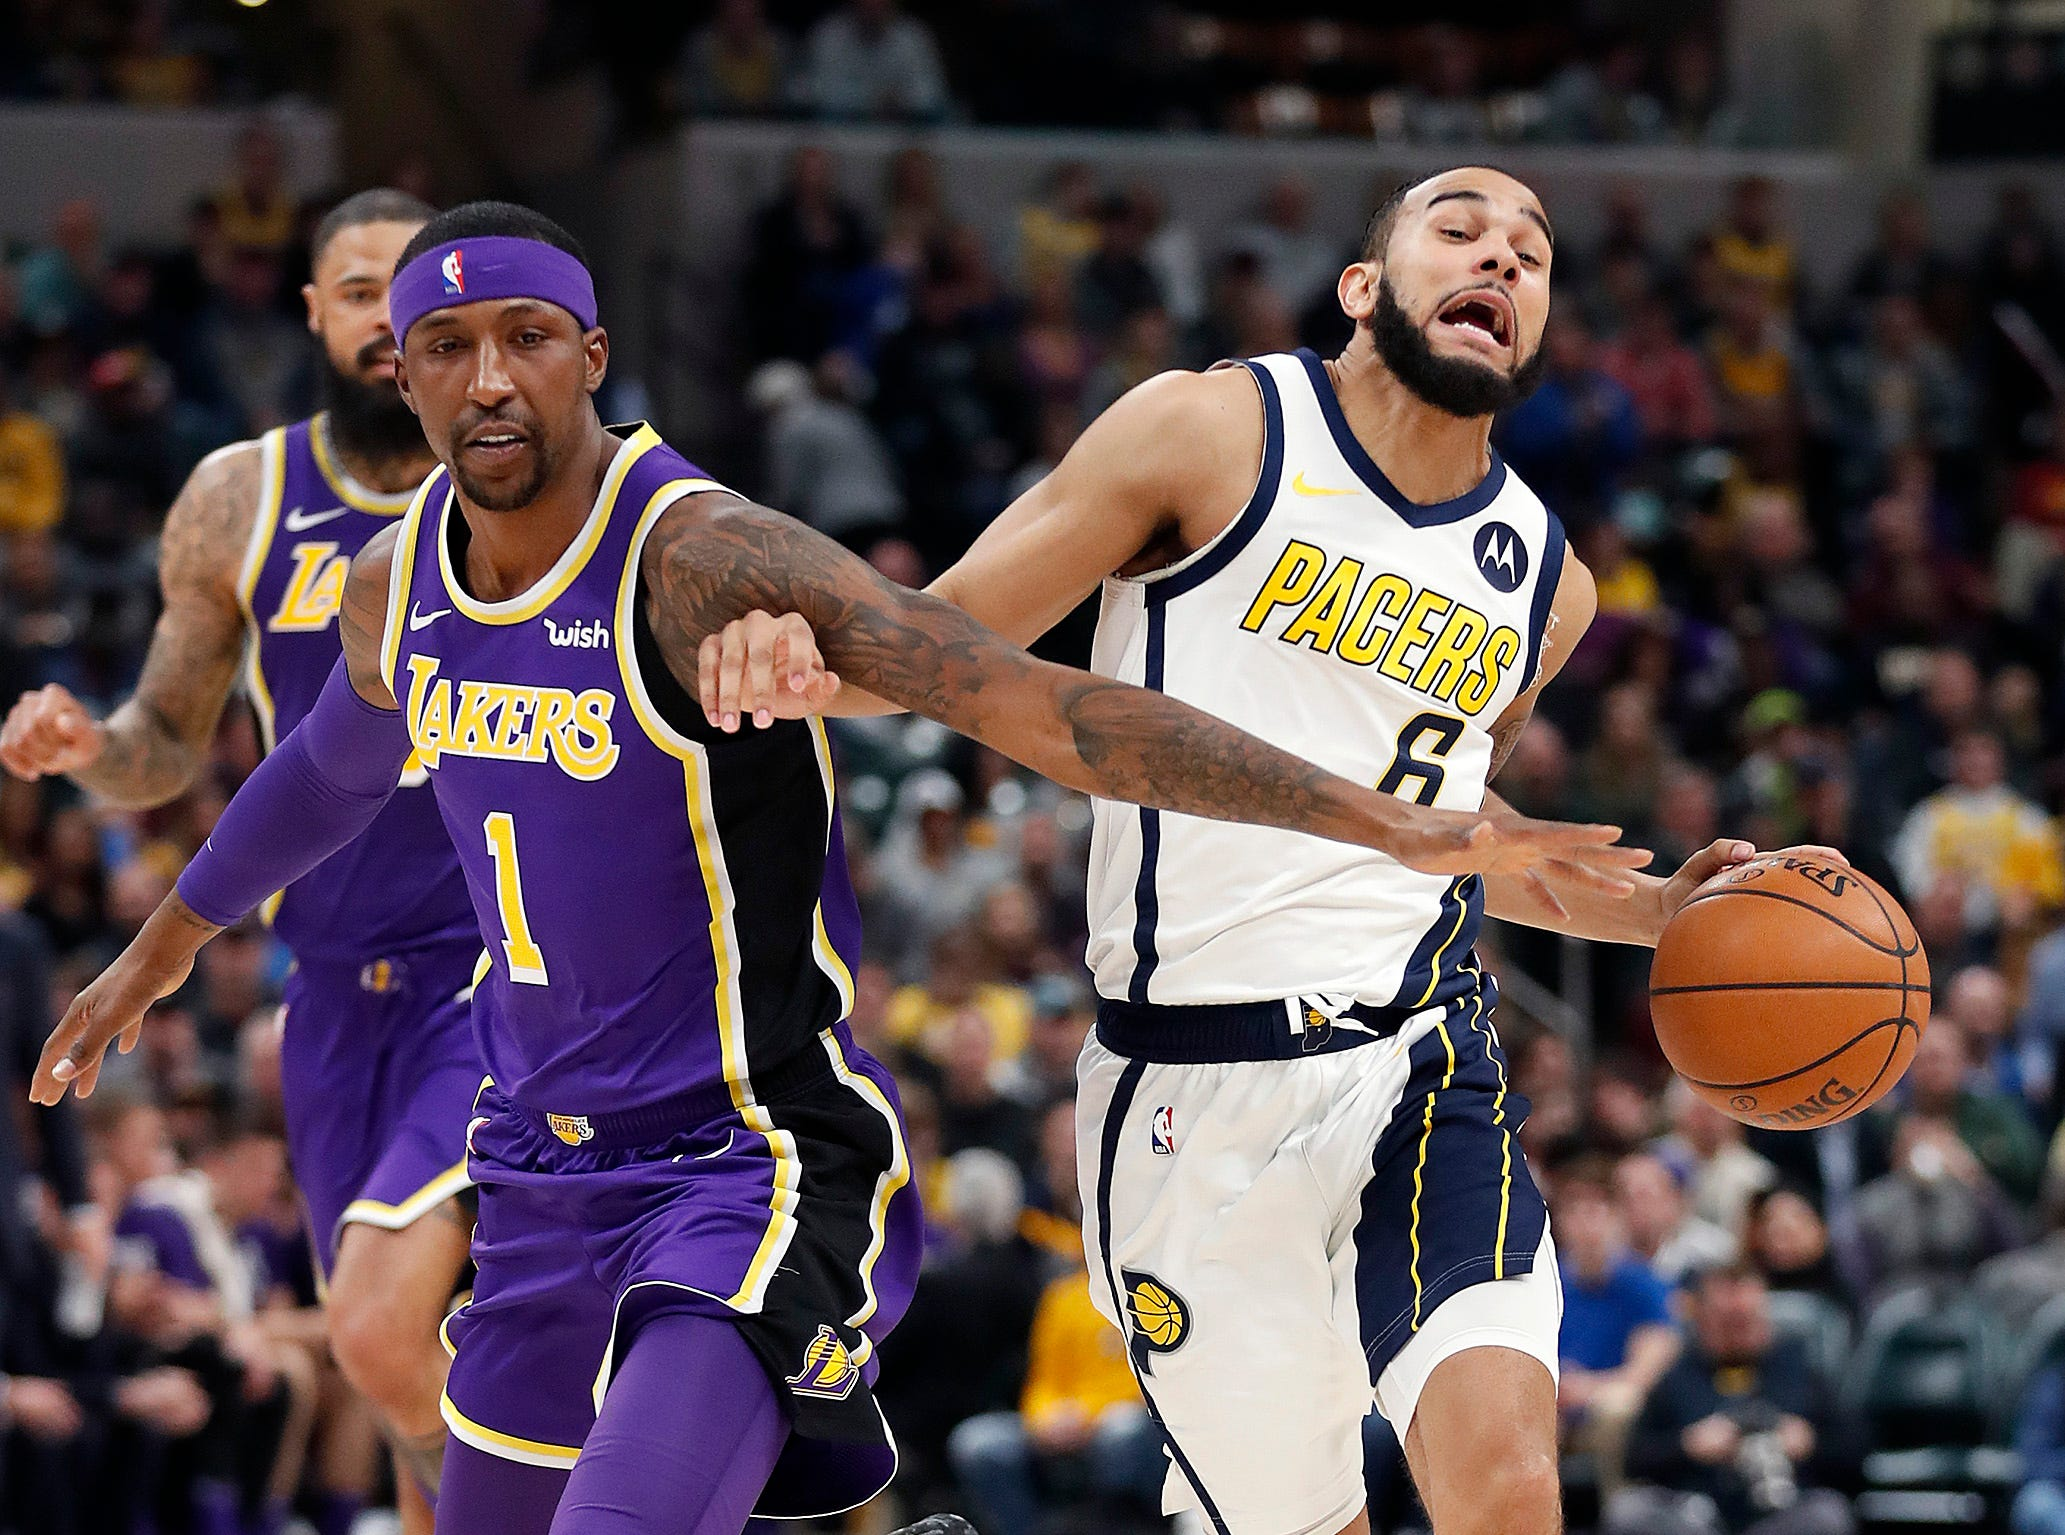 Indiana Pacers guard Cory Joseph (6) is fouled by Los Angeles Lakers guard Kentavious Caldwell-Pope (1) in the first half of their game at Bankers Life Fieldhouse on Tuesday, Feb. 5, 2019.